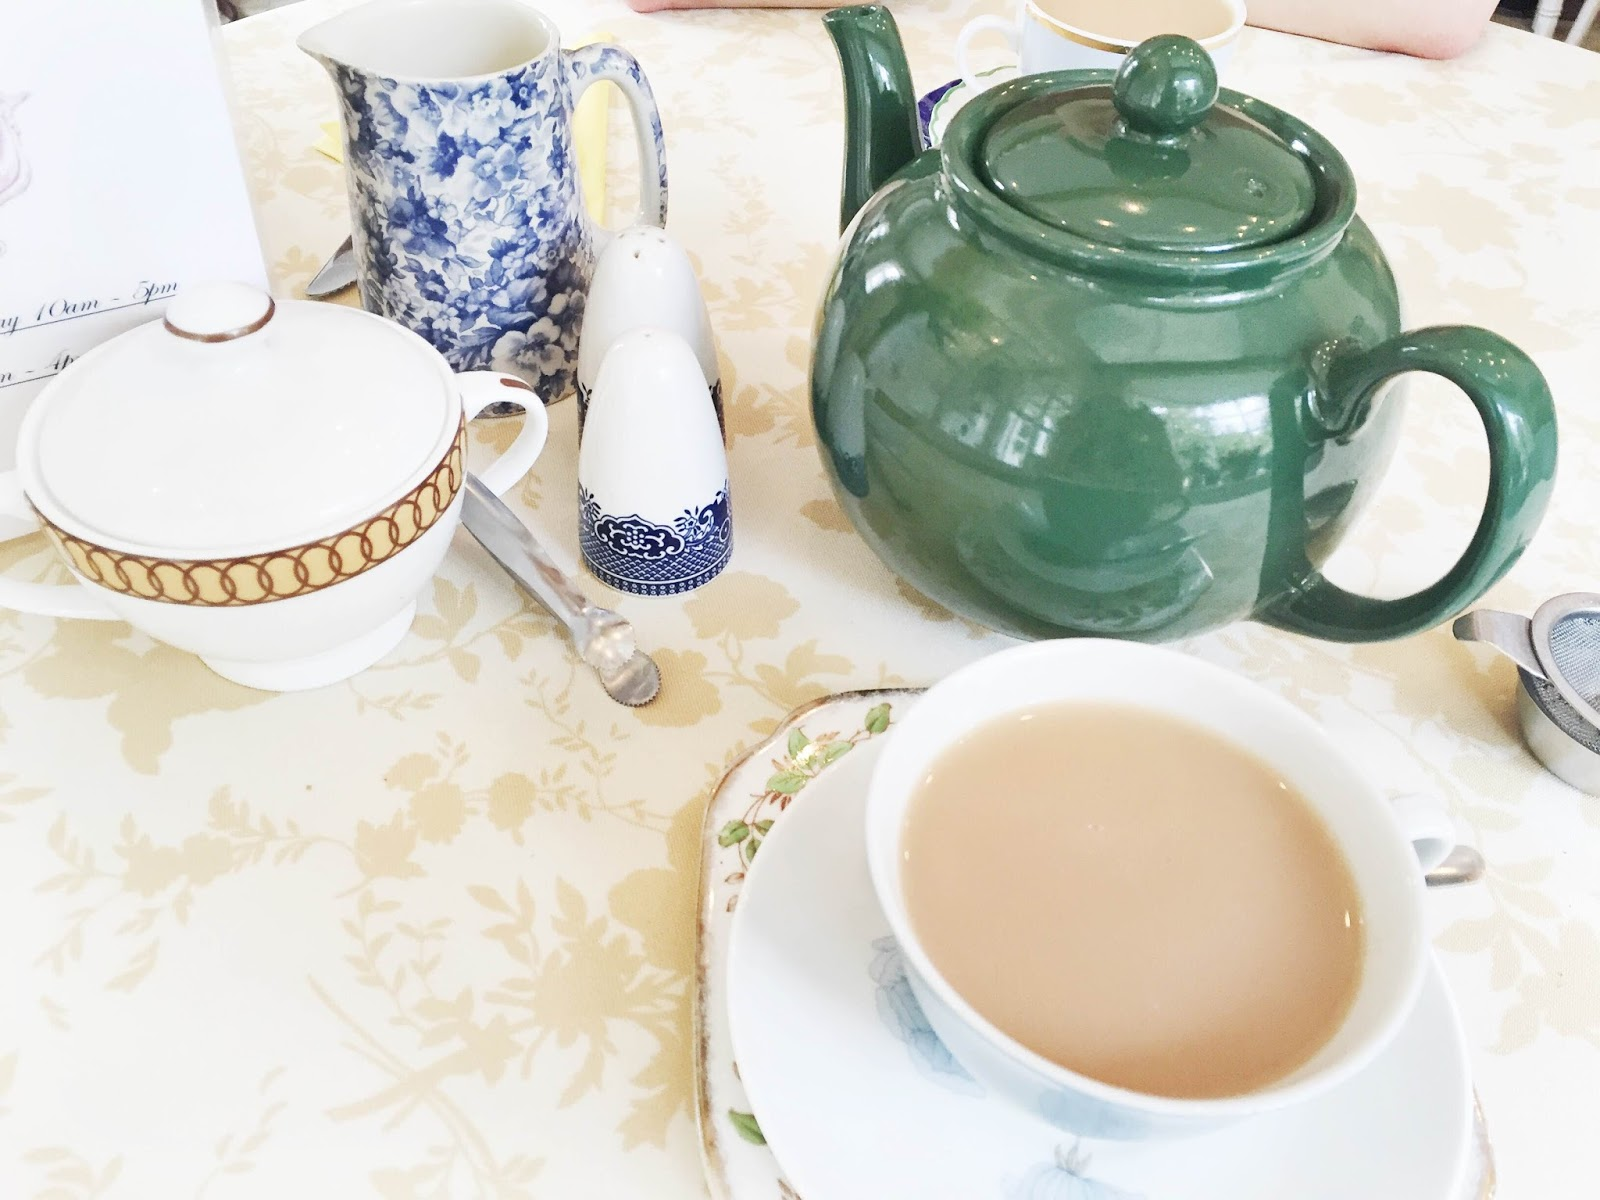 The Whitmore Tea Room Second Visit Milkyte4 Beauty